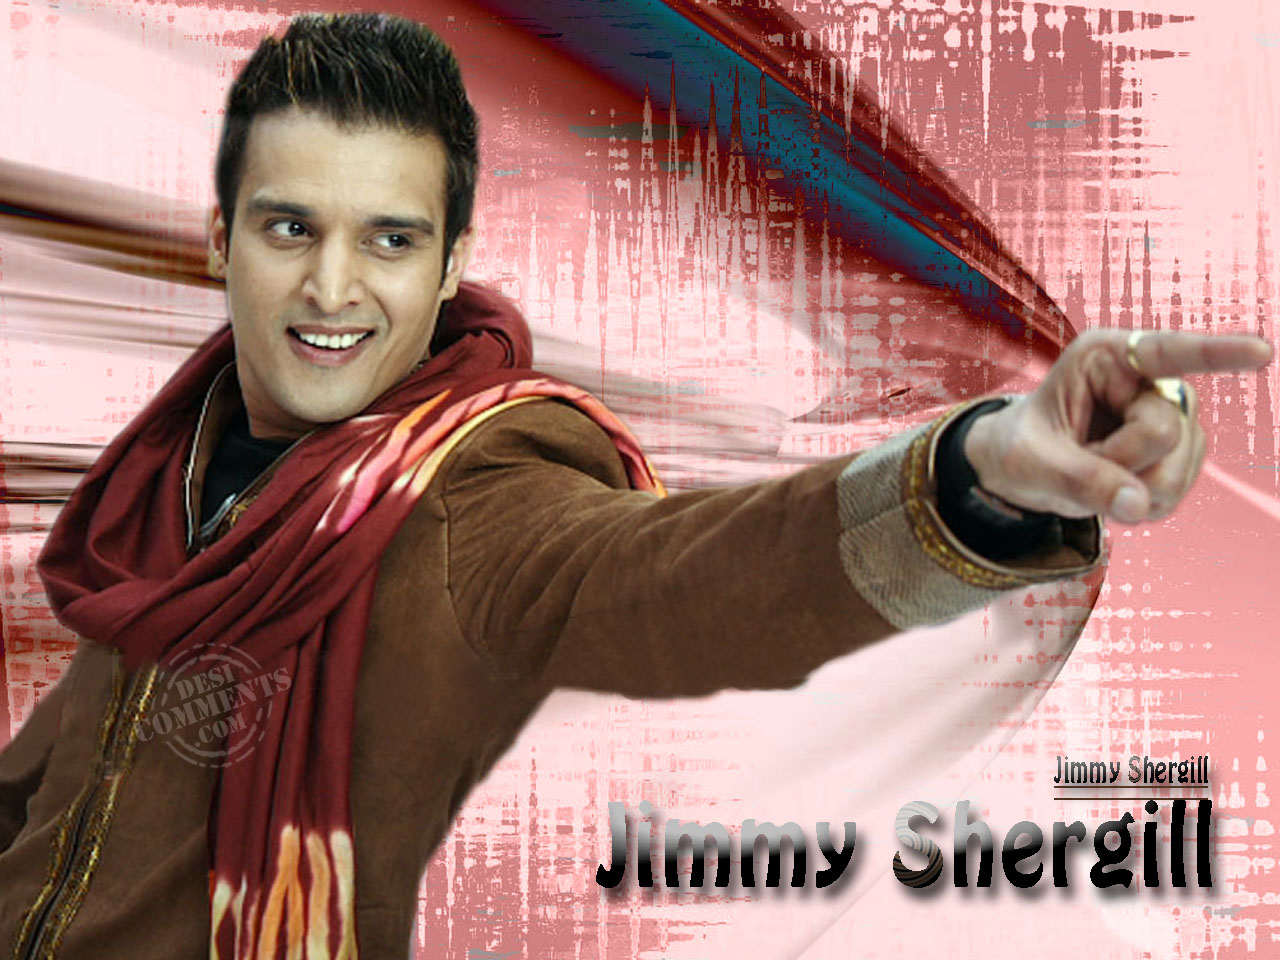 jimmy shergill mp3 songsjimmy shergill movies, jimmy shergill insta, jimmy shergill film, jimmy shergill instagram, jimmy shergill priyanka puri photos, jimmy shergill net worth, jimmy shergill, jimmy shergill wife, jimmy shergill punjabi movies list, jimmy shergill songs, jimmy shergill wiki, jimmy shergill married, jimmy shergill movie list, jimmy shergill facebook, jimmy shergill shareek, jimmy shergill wikipedia, jimmy shergill mp3 songs, jimmy shergill hero, jimmy shergill new movie, jimmy shergill punjabi movies